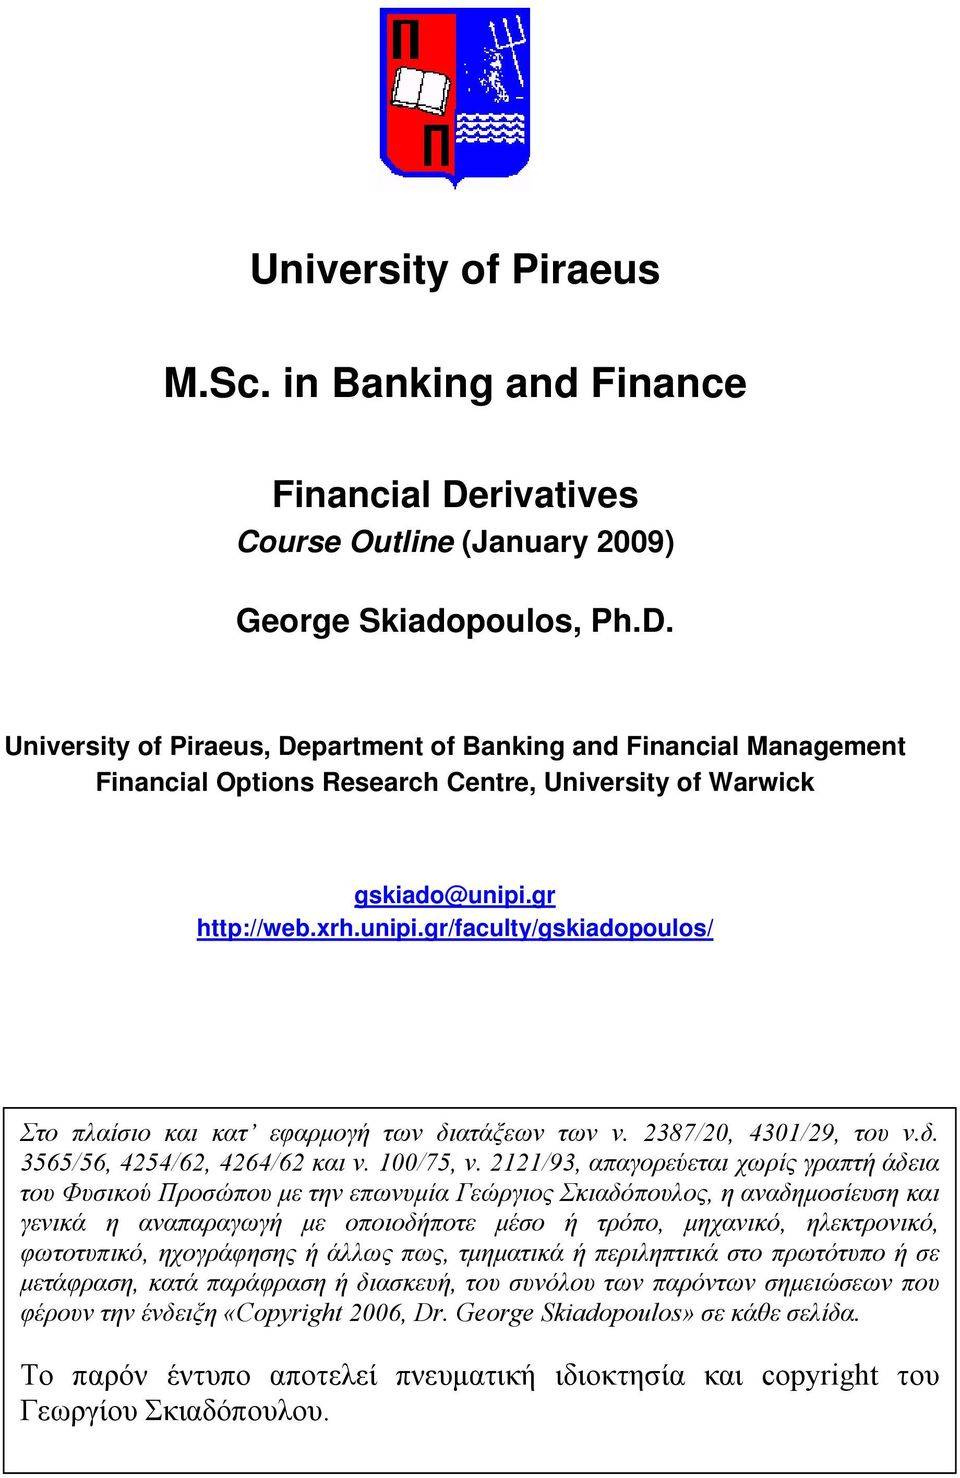 University of Piraeus, Department of Banking and Financial Management Financial Options Research Centre, University of Warwick gskiado@unipi.